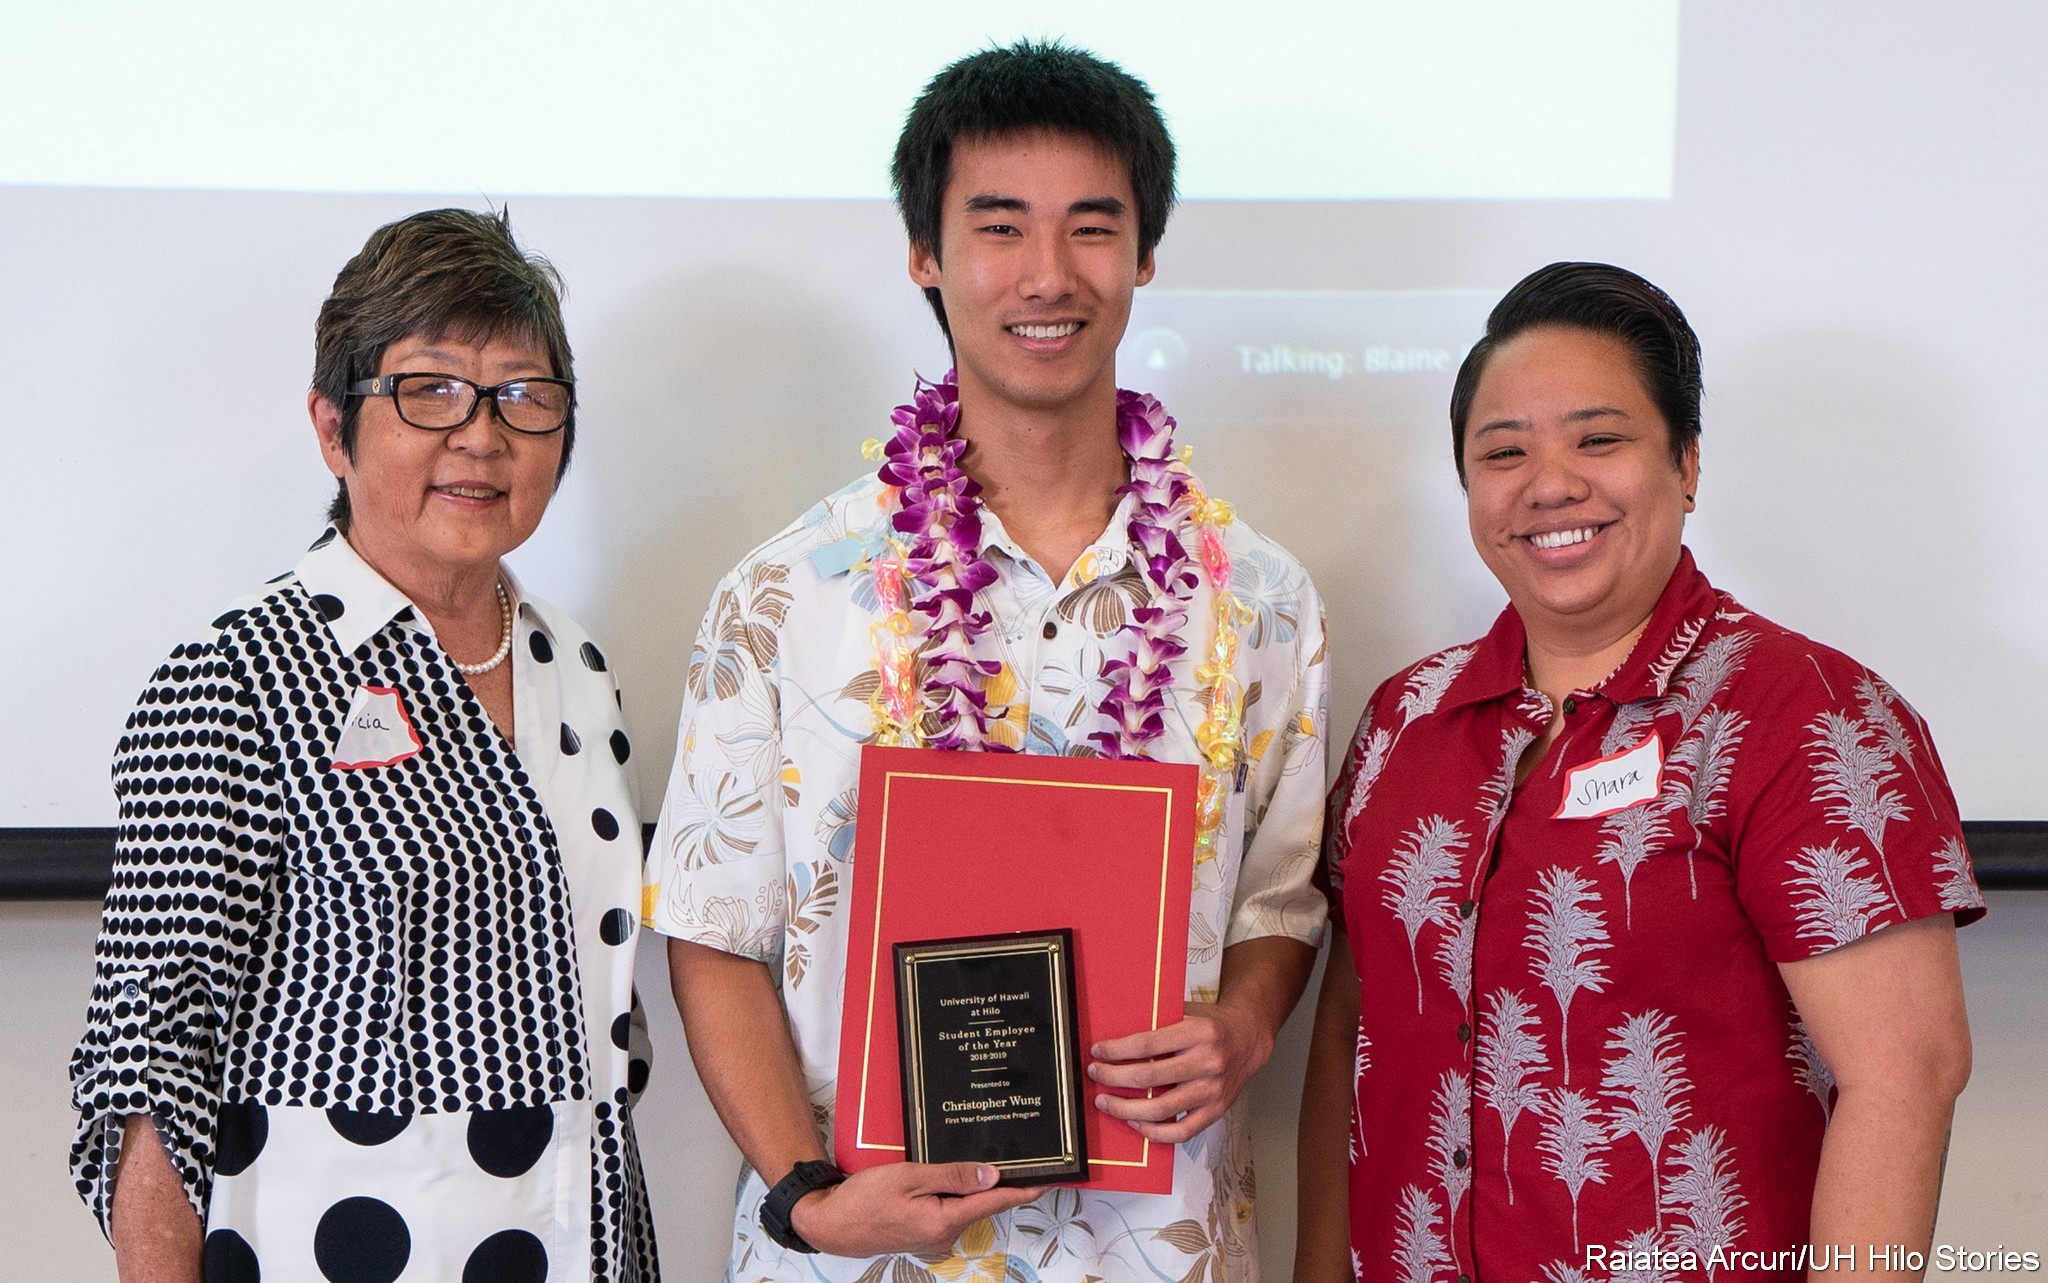 PHOTOS: 2019 UH Hilo Campus Awards honor top faculty, staff, and student employee